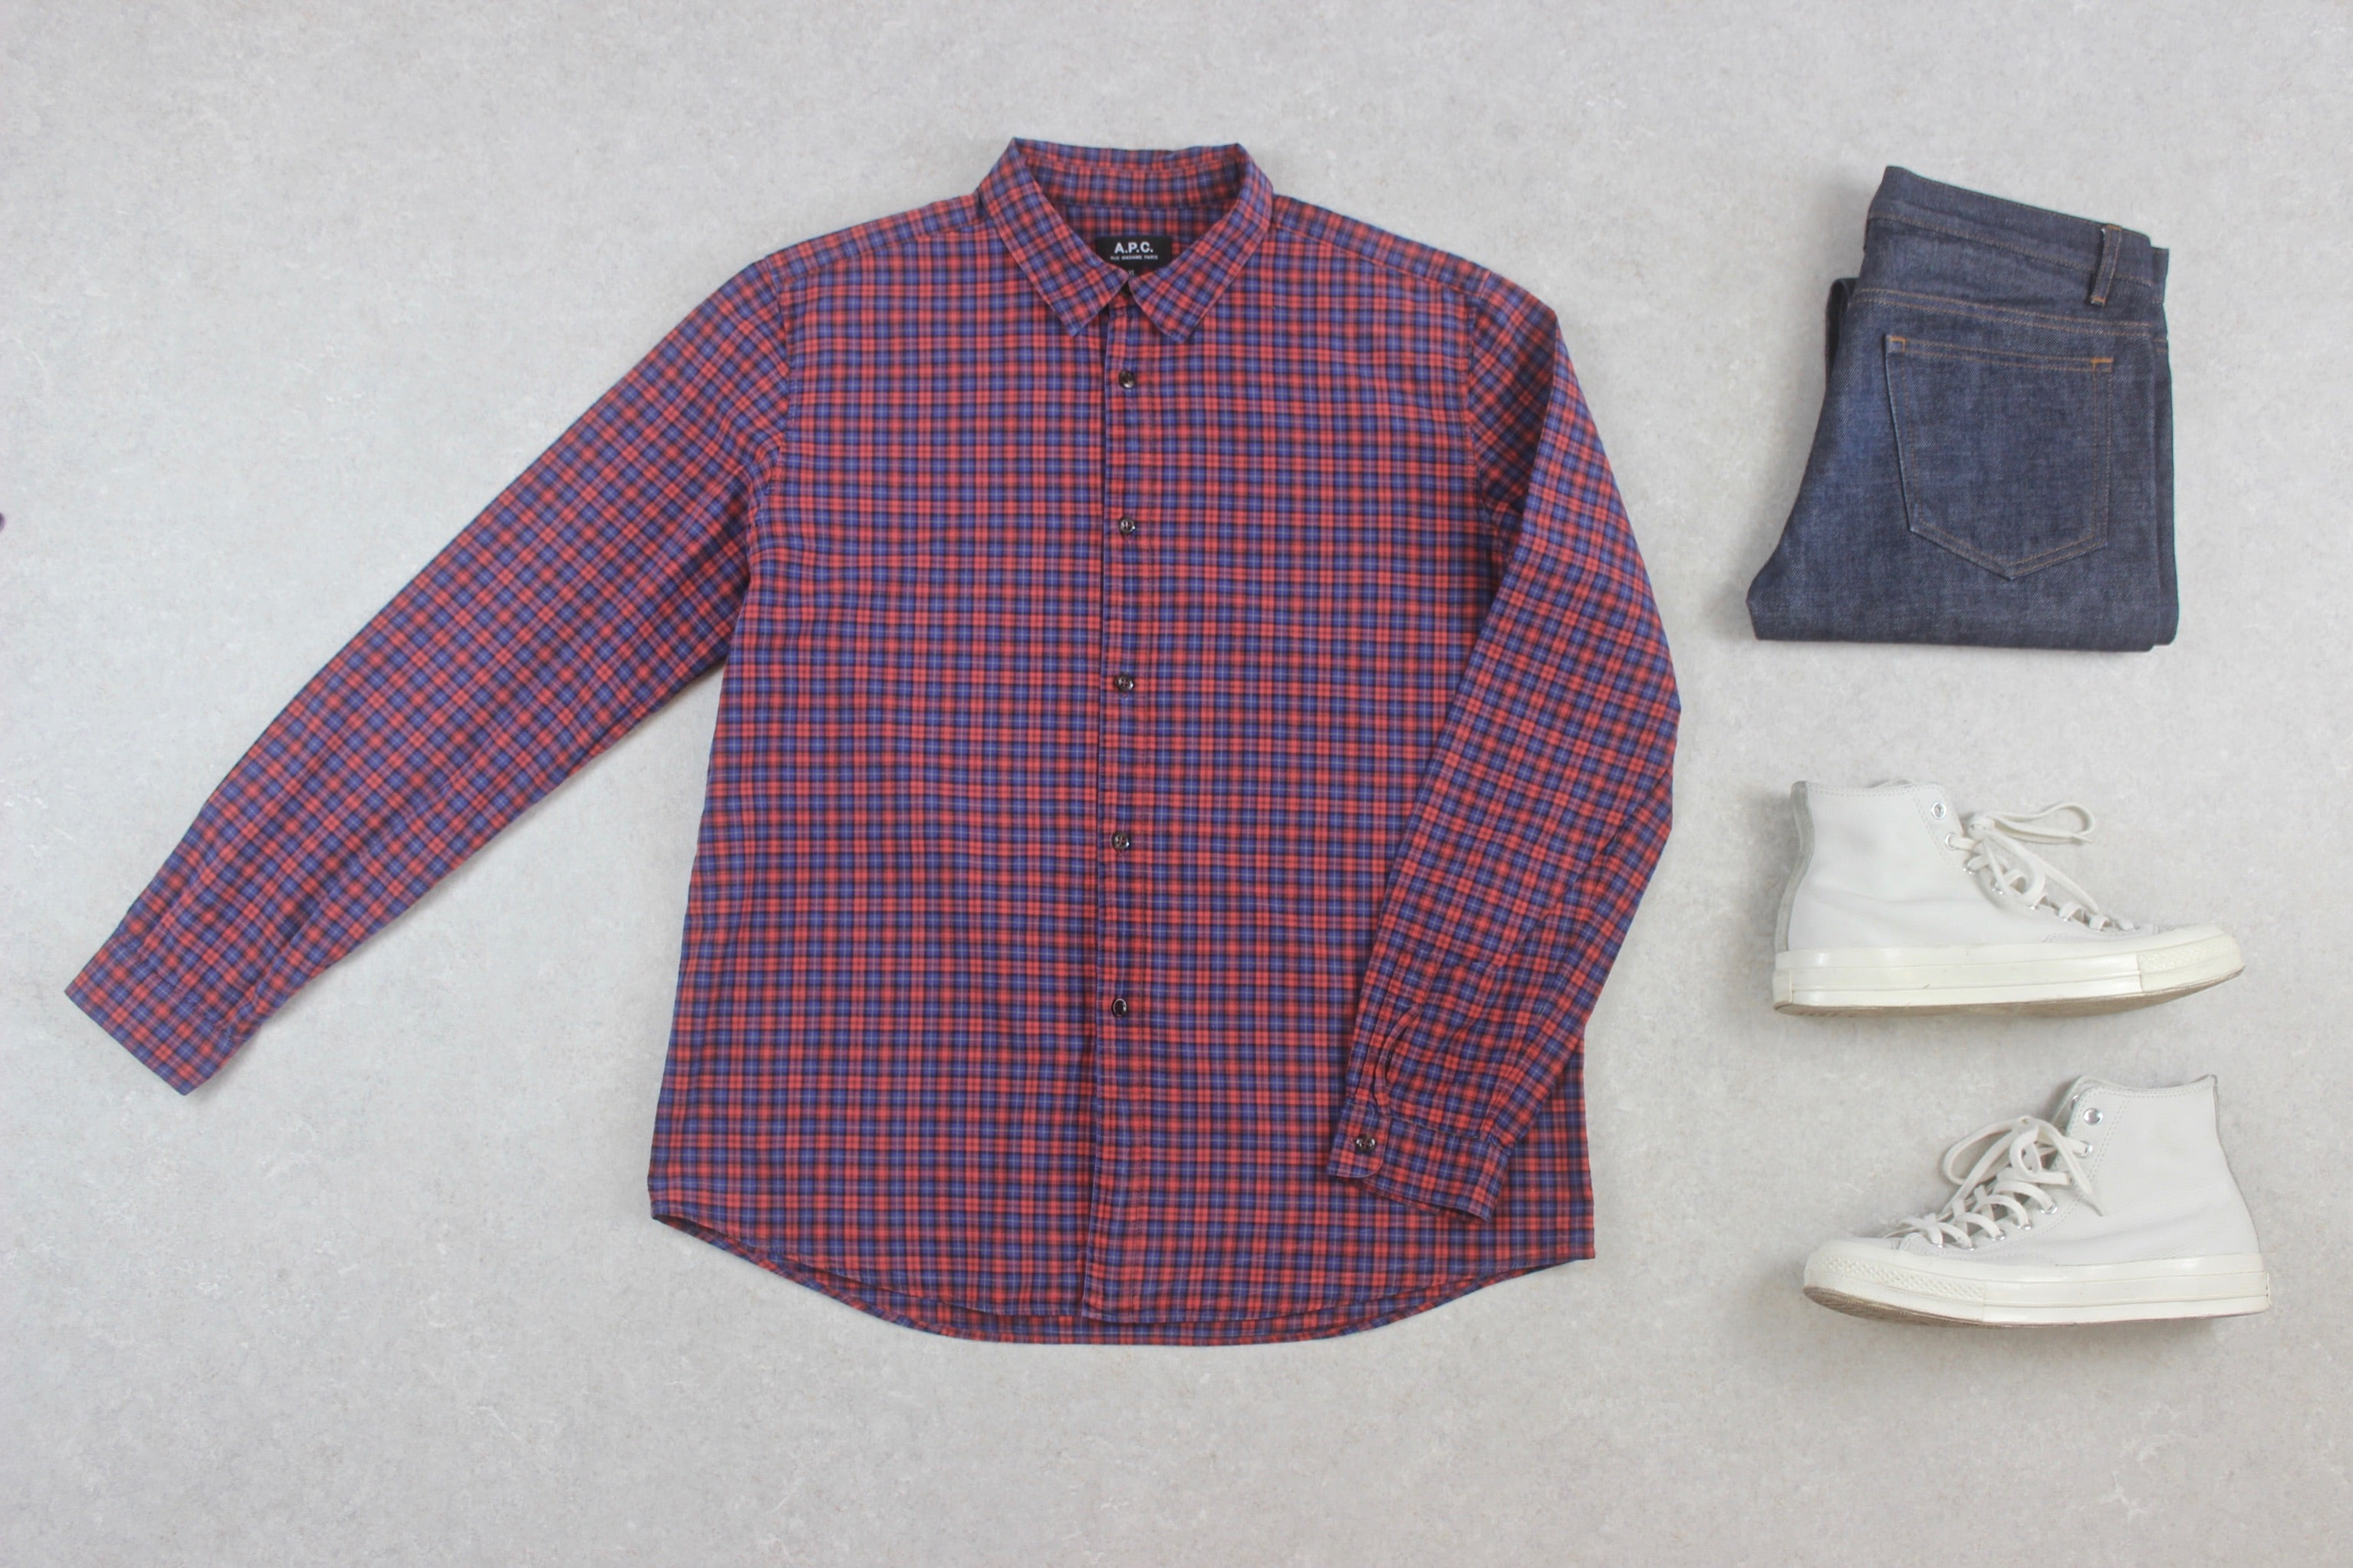 A.P.C. - Shirt - Red/Blue Check - Extra Large